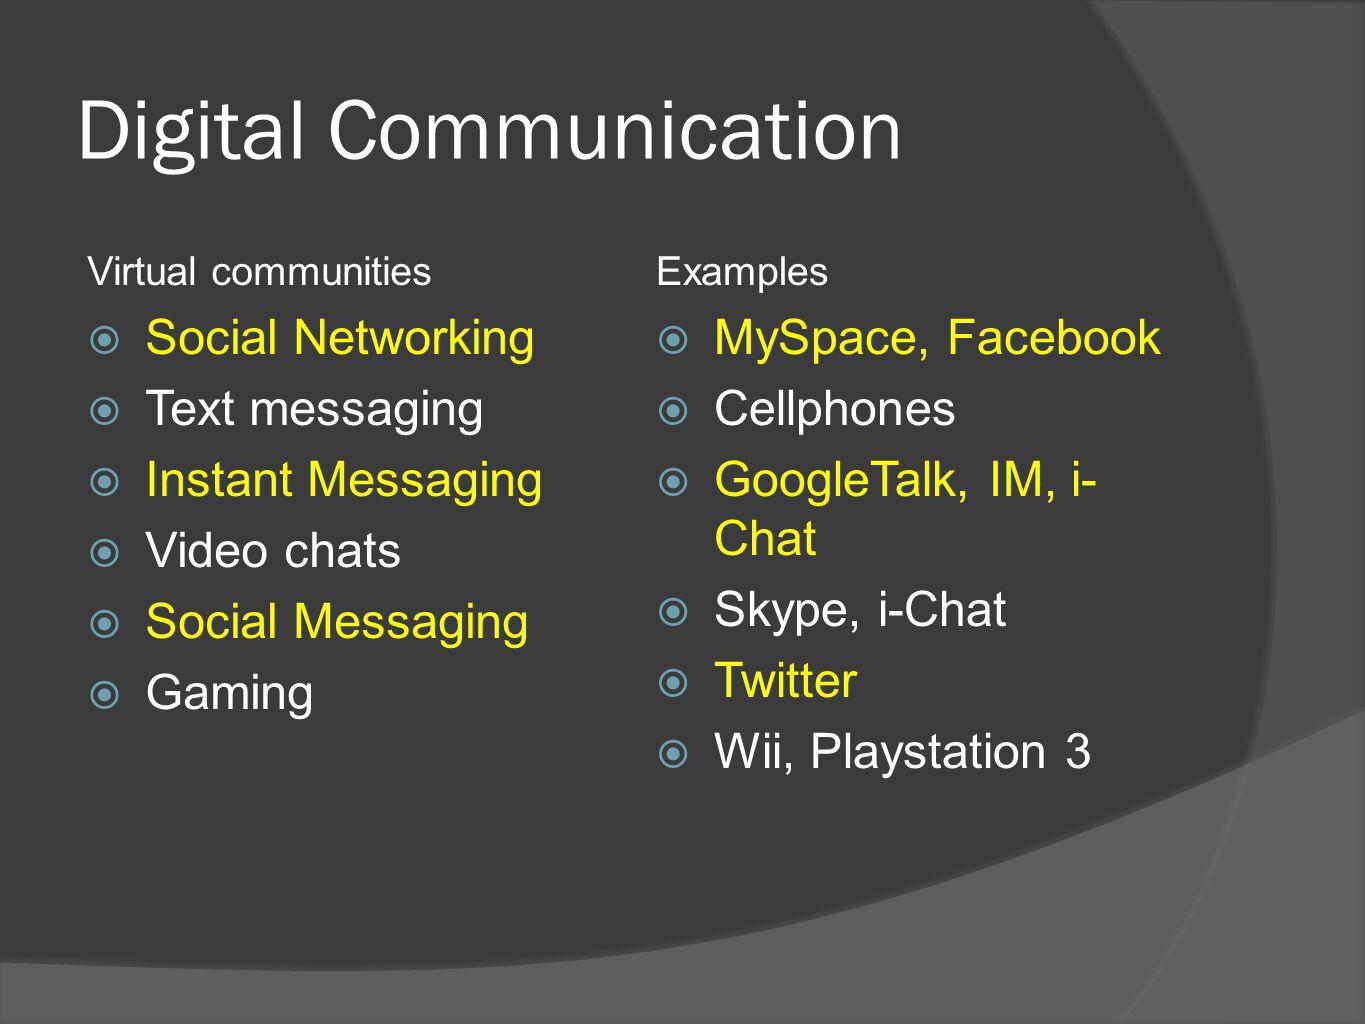 Digital Communication Virtual communities Social Networking Text messaging Instant Messaging Video chats Social Messaging Gaming Examples MySpace, Facebook Cellphones GoogleTalk, IM, i- Chat Skype, i-Chat Twitter Wii, Playstation 3